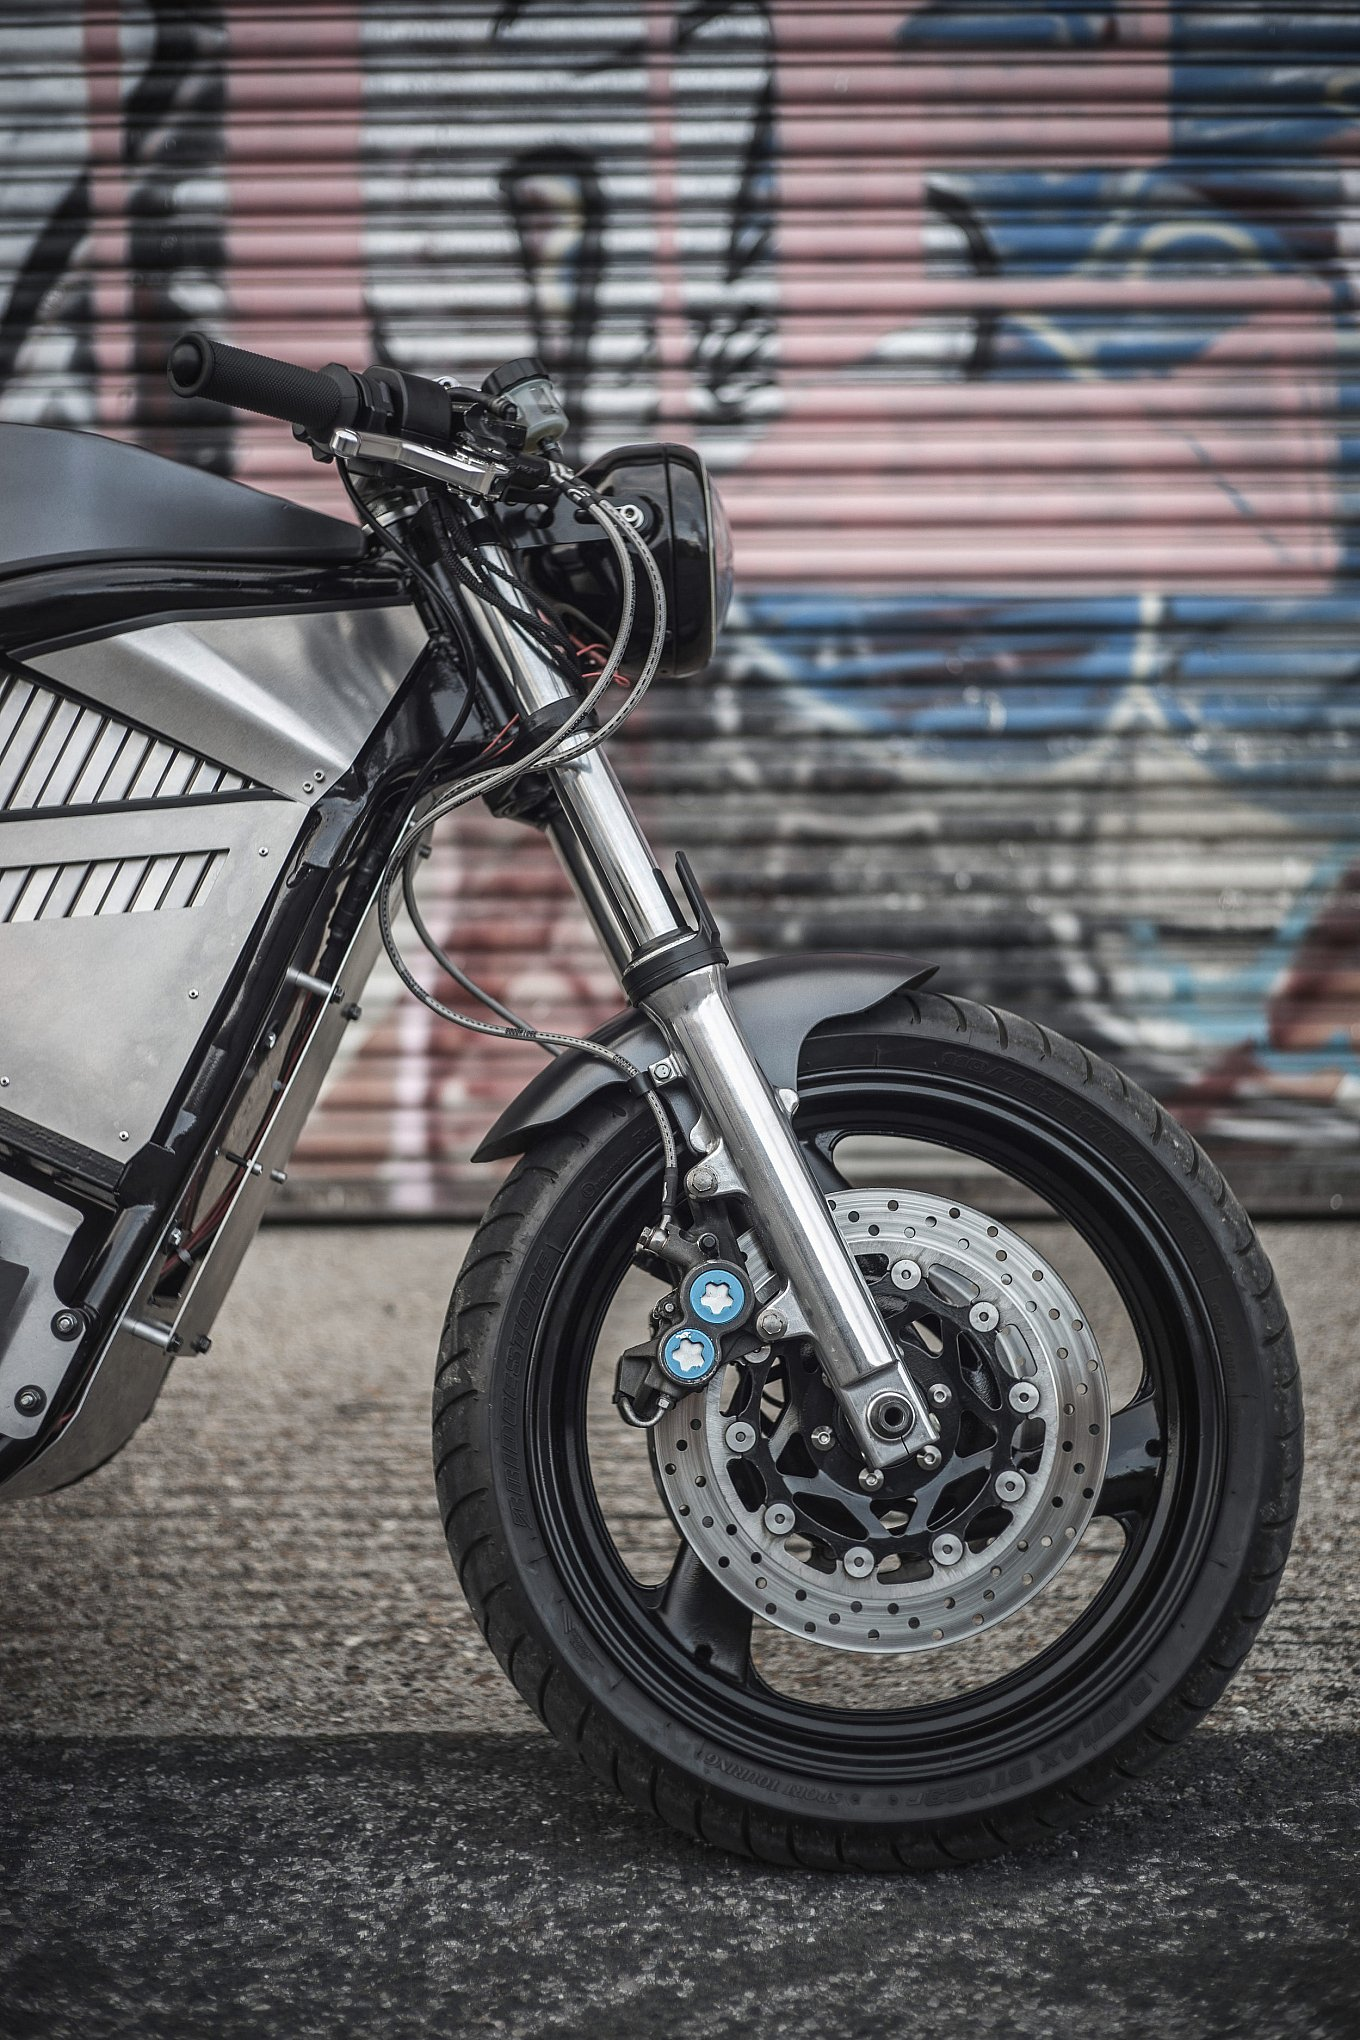 phaser-type-1-electric-motorcycle-by-union-motion-4